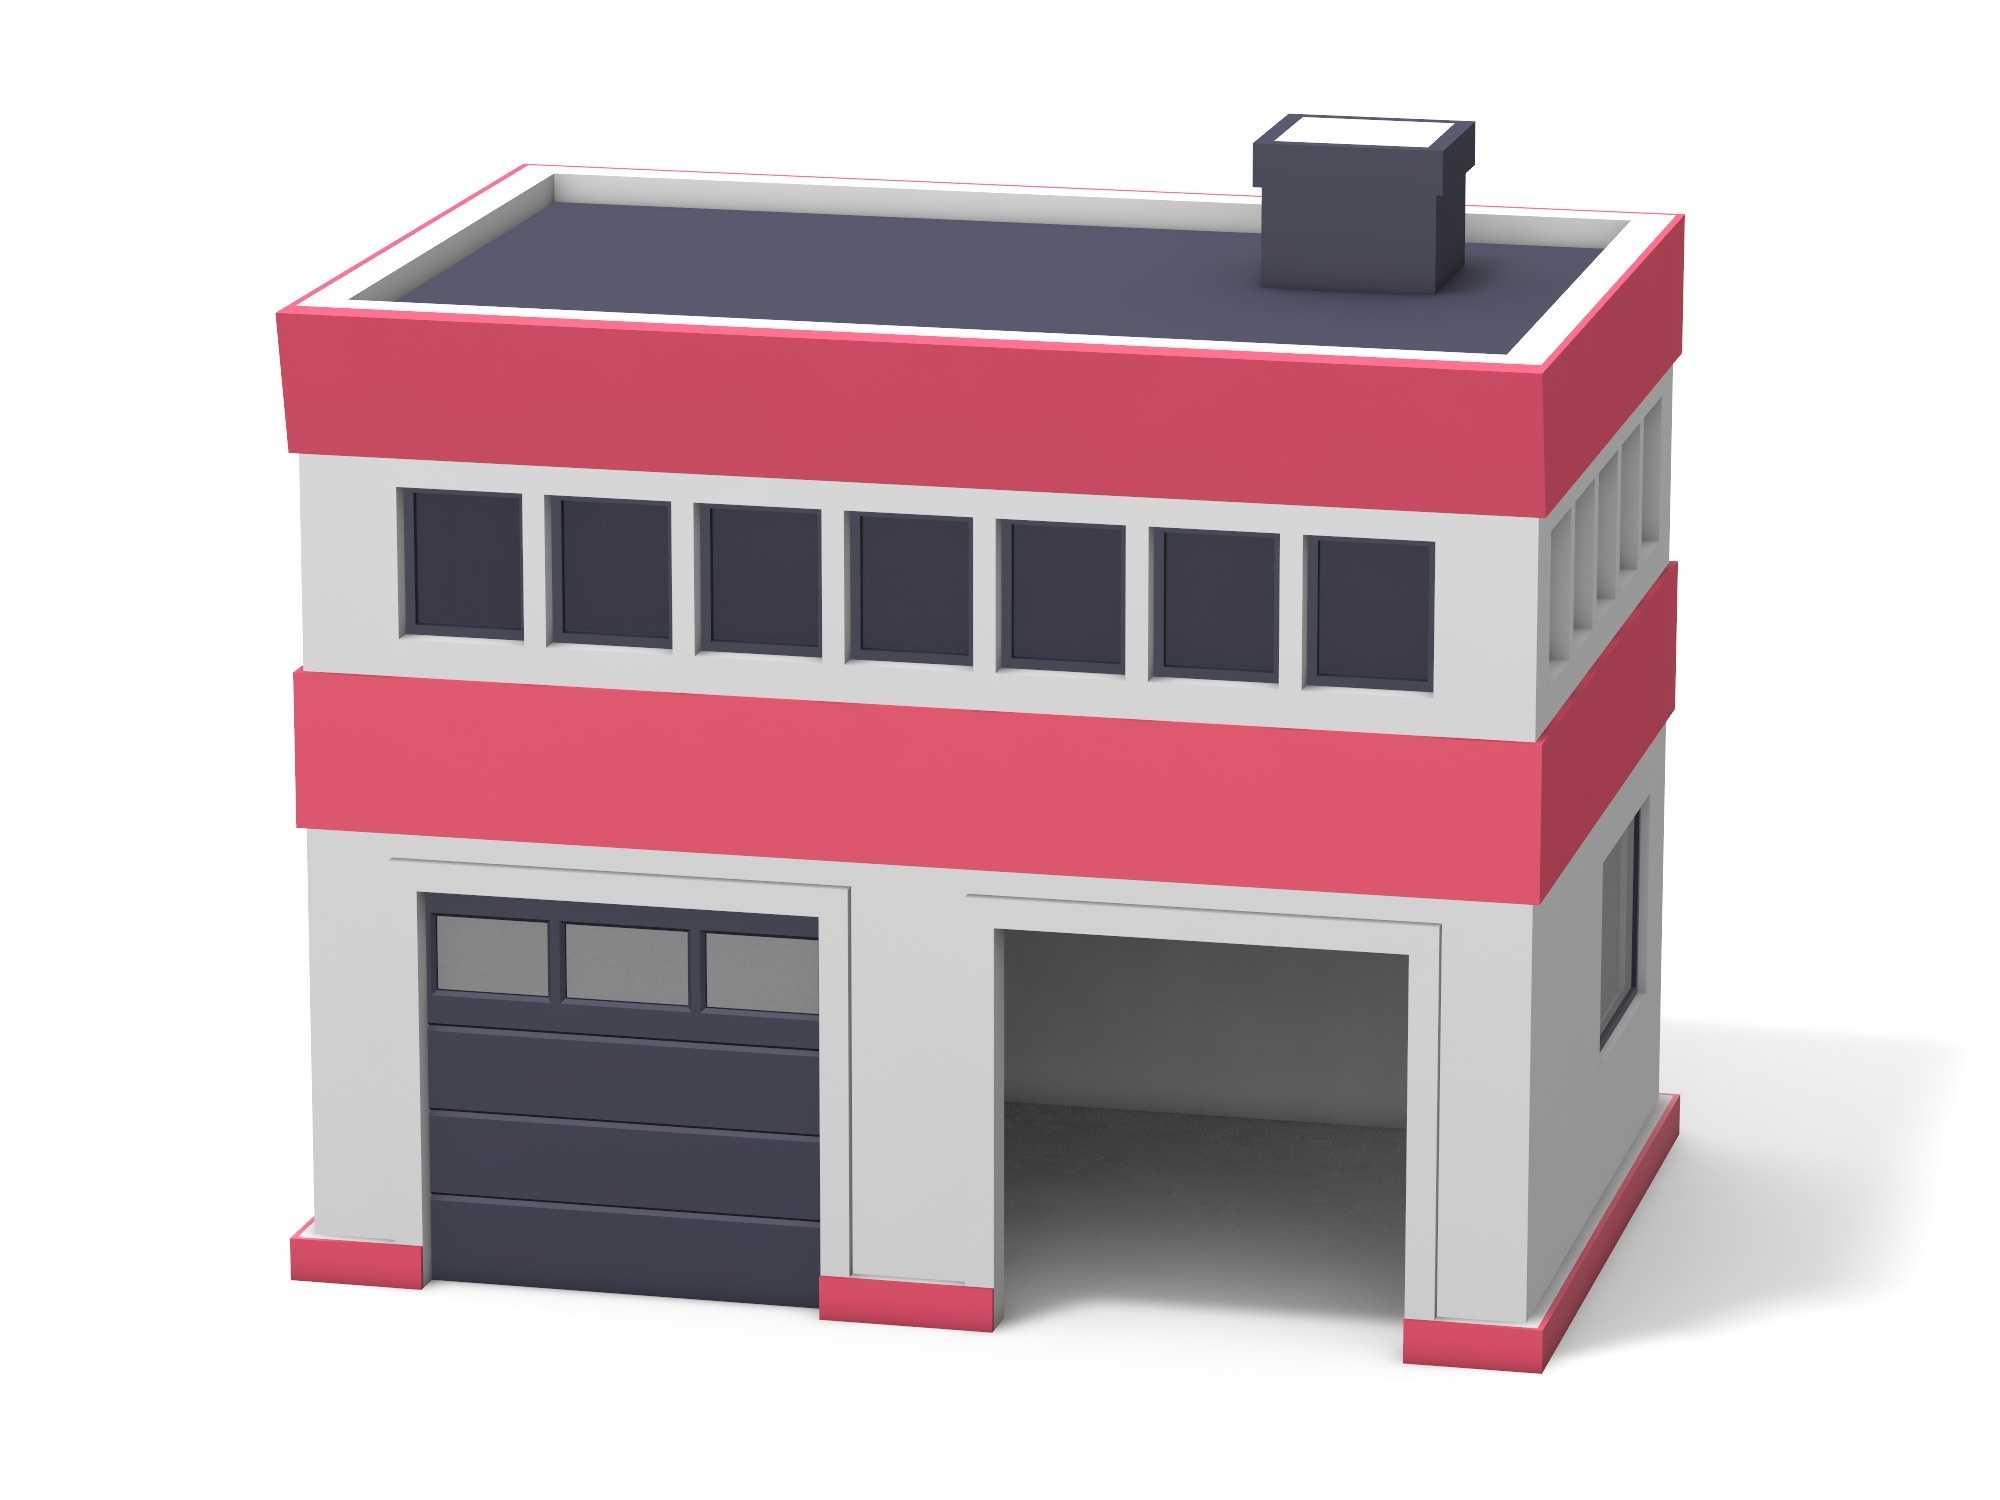 Fire station - 3D design by Vectary assets Nov 7, 2018